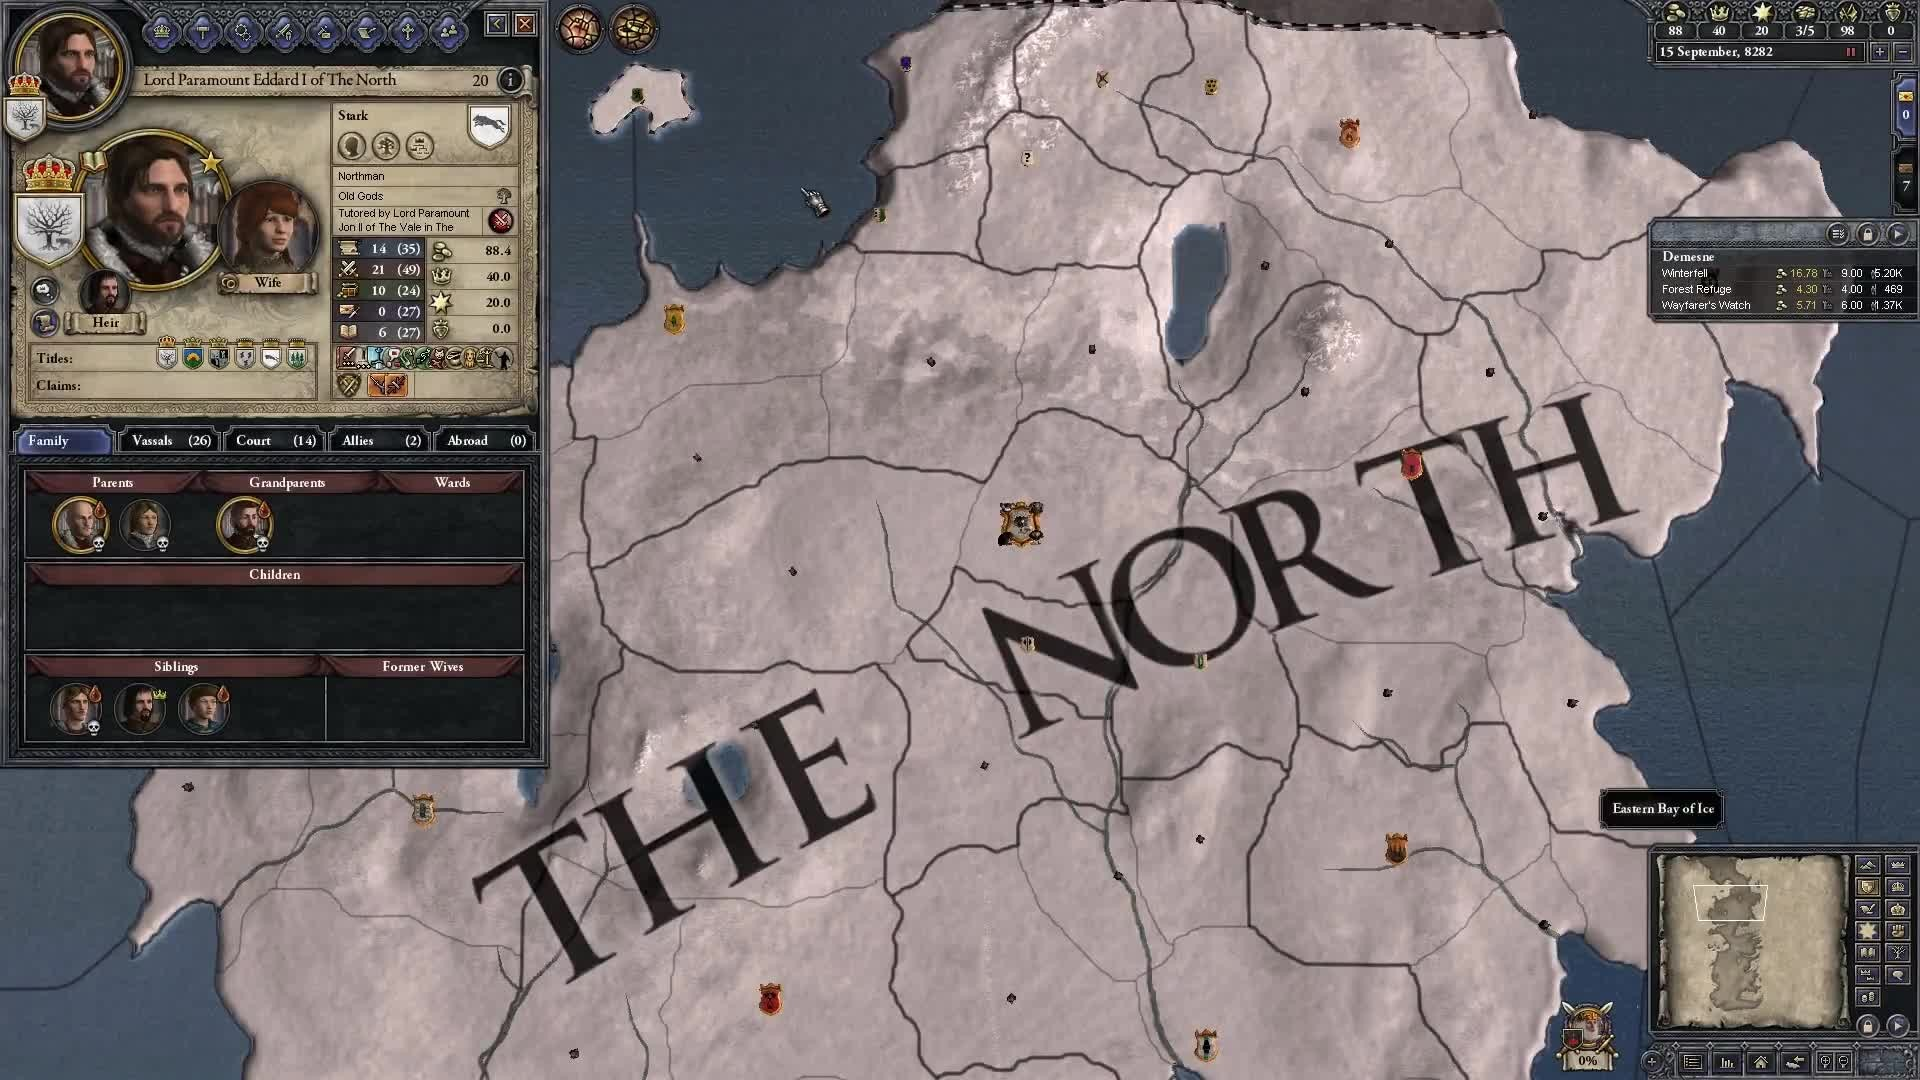 House Stark 'Let's Play' CK2:AGOT by Saithis video – Crusader Kings 2: A  Game of Thrones (CK2:AGOT) mod for Crusader Kings II – Mod DB